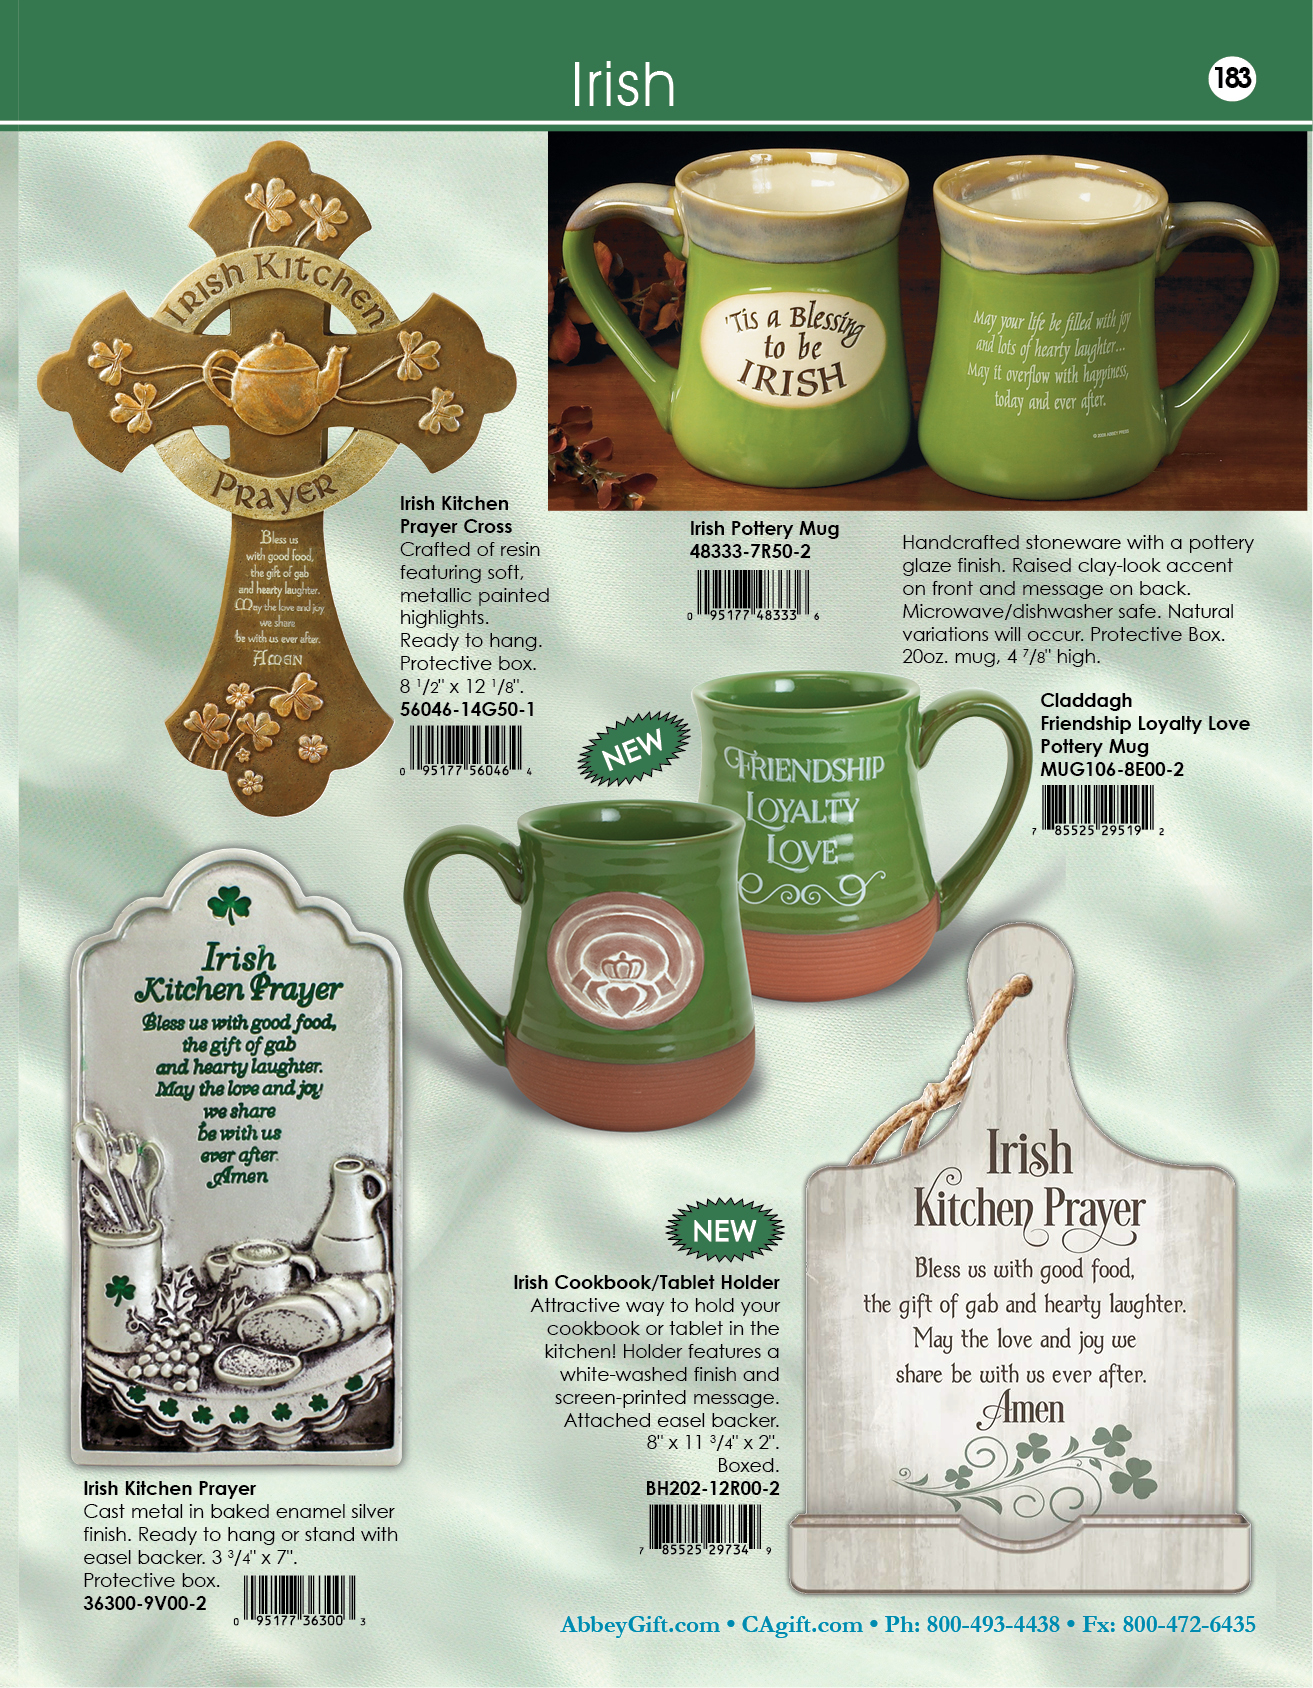 CA & Abbey Gift Pgs183